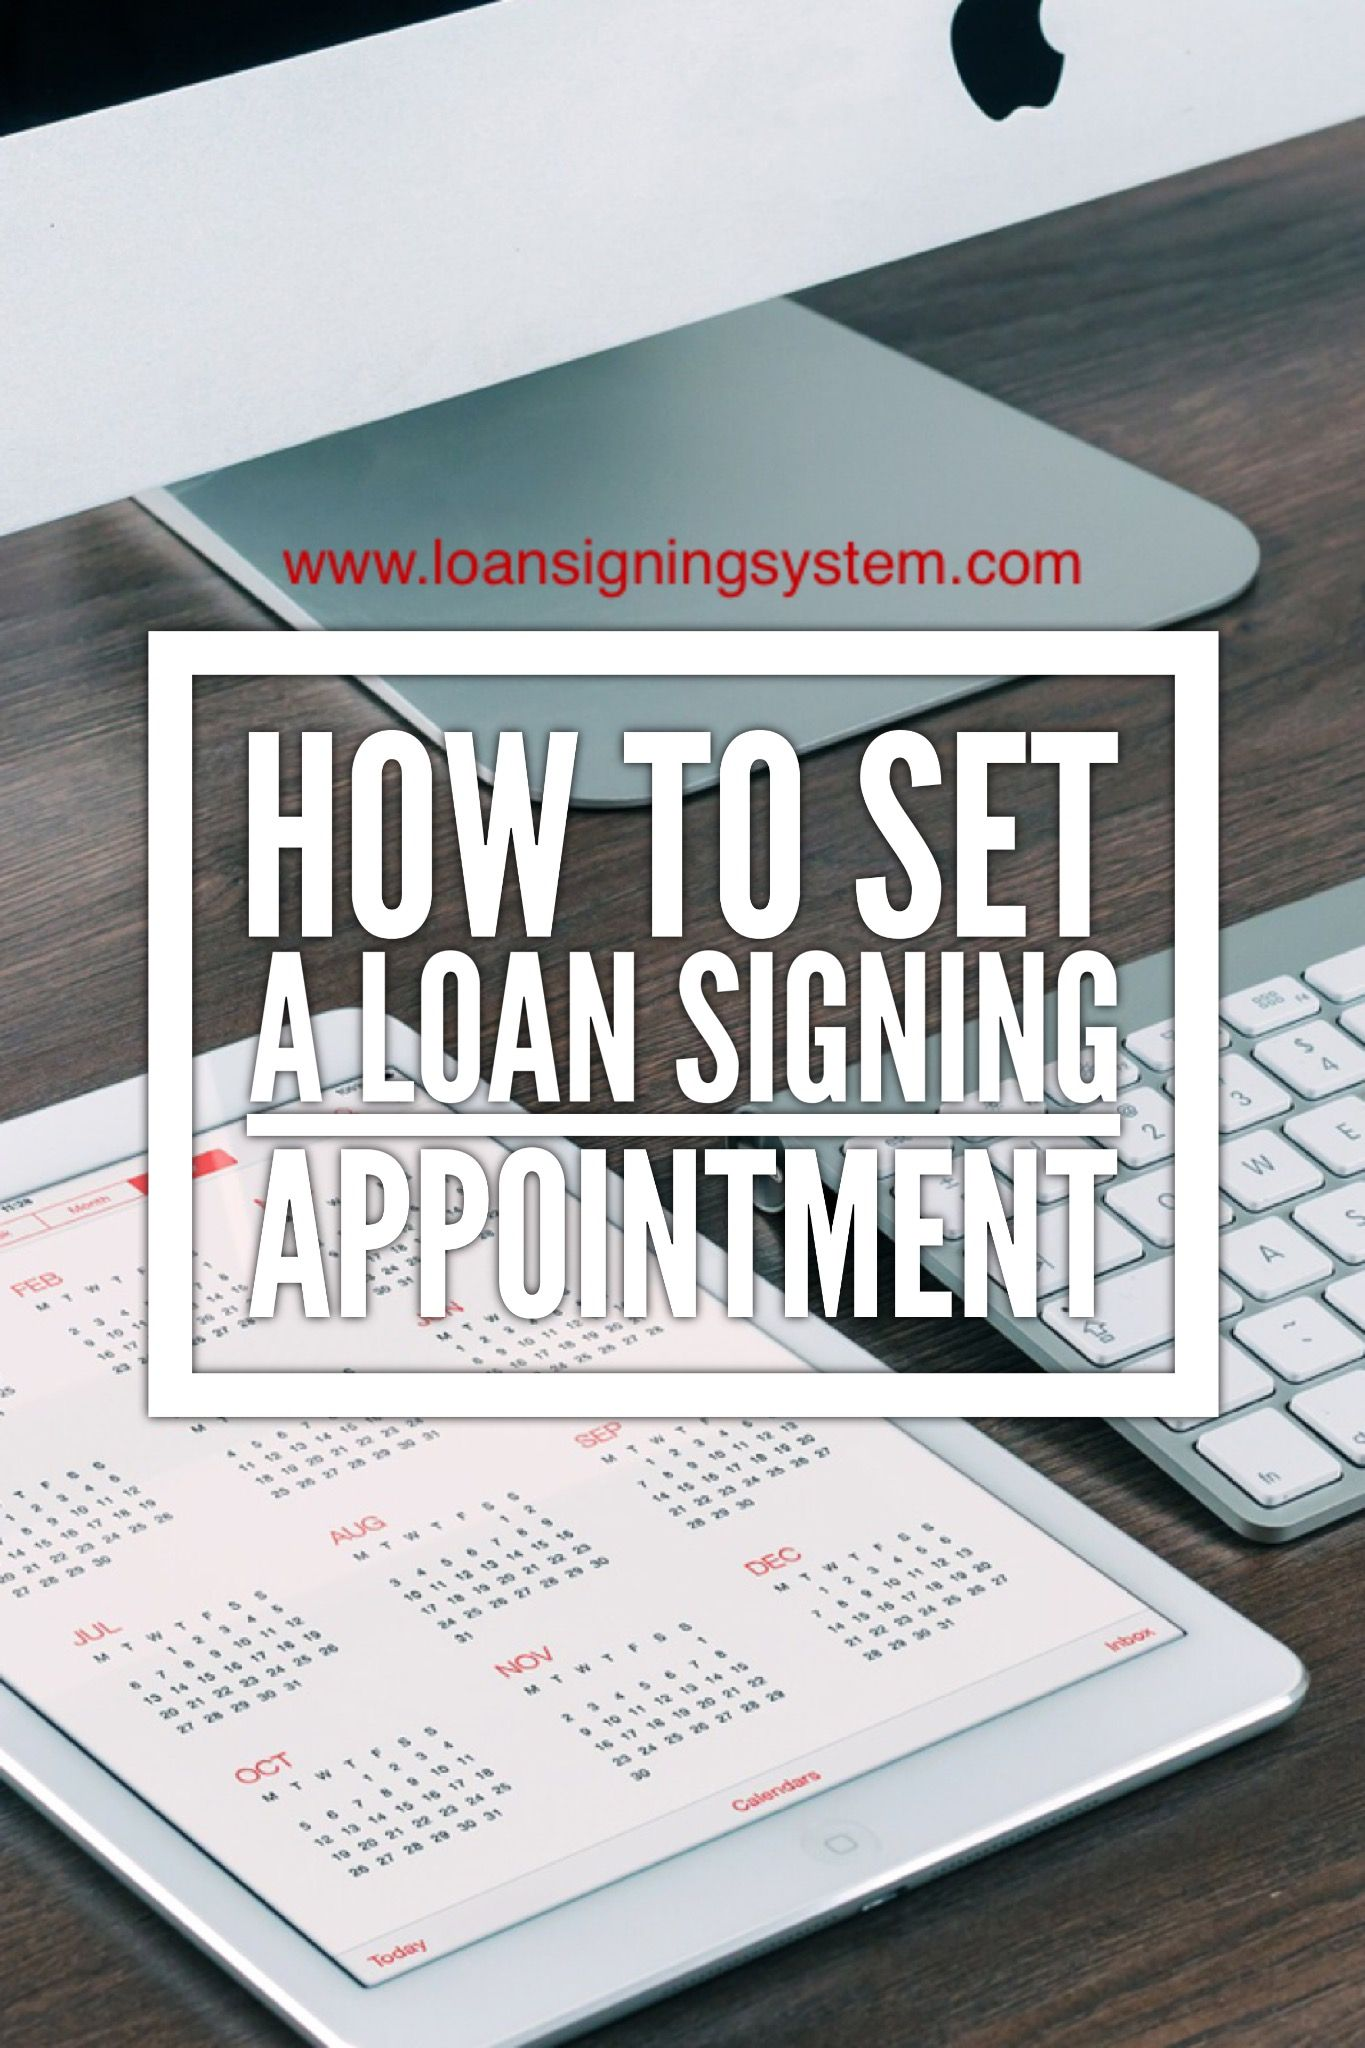 Learn how to properly set up a loan signing appointment so